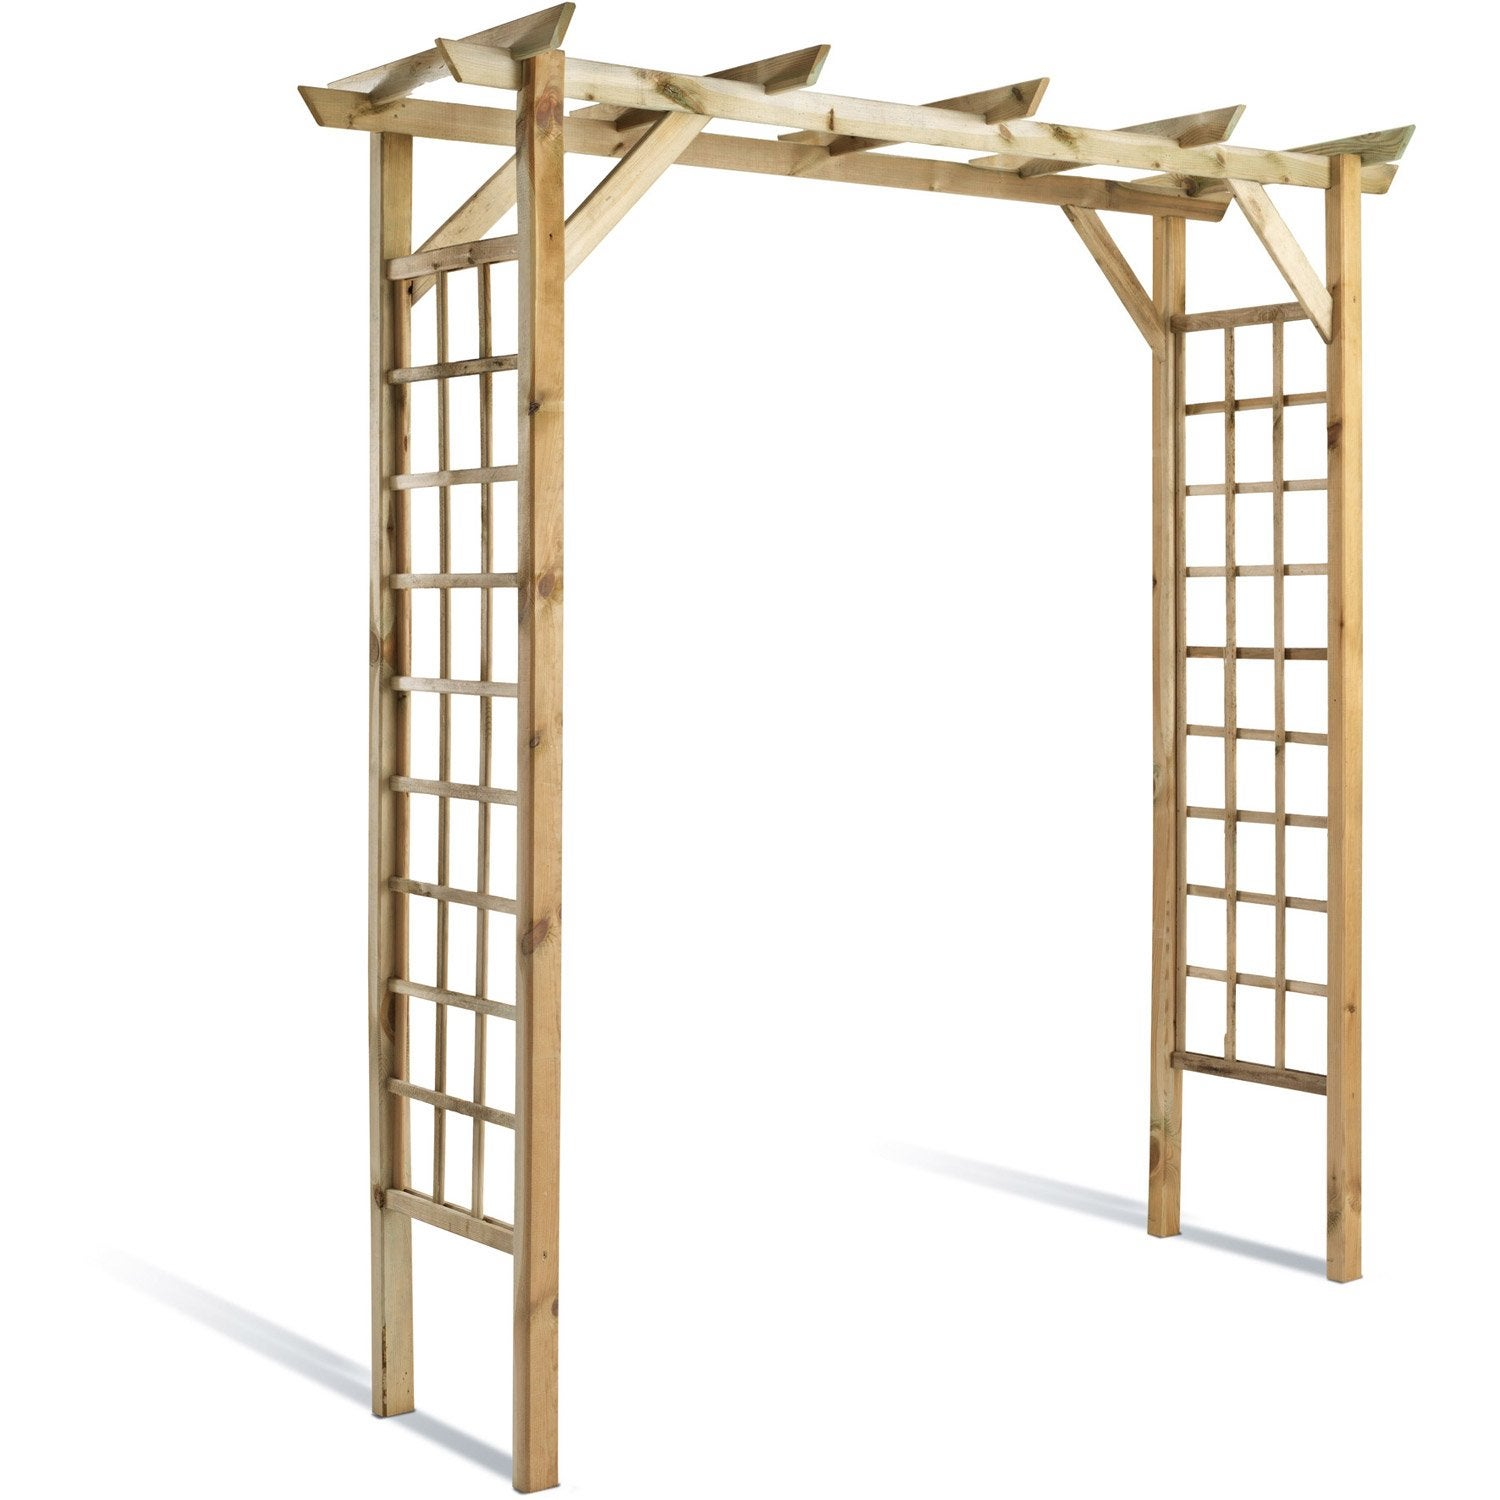 pergola bois leroy merlin pergola bois leroy merlin sur. Black Bedroom Furniture Sets. Home Design Ideas